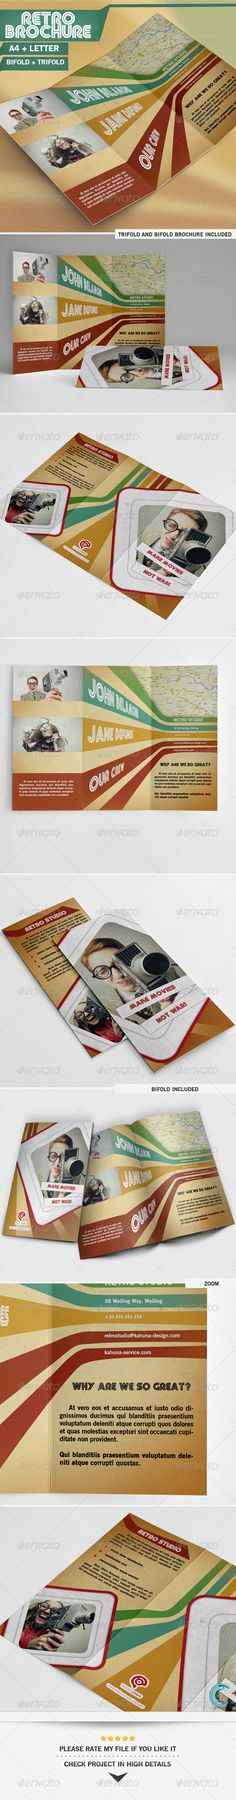 Education School Trifold Brochure Template v2 Schools, Brochures - retro brochure template